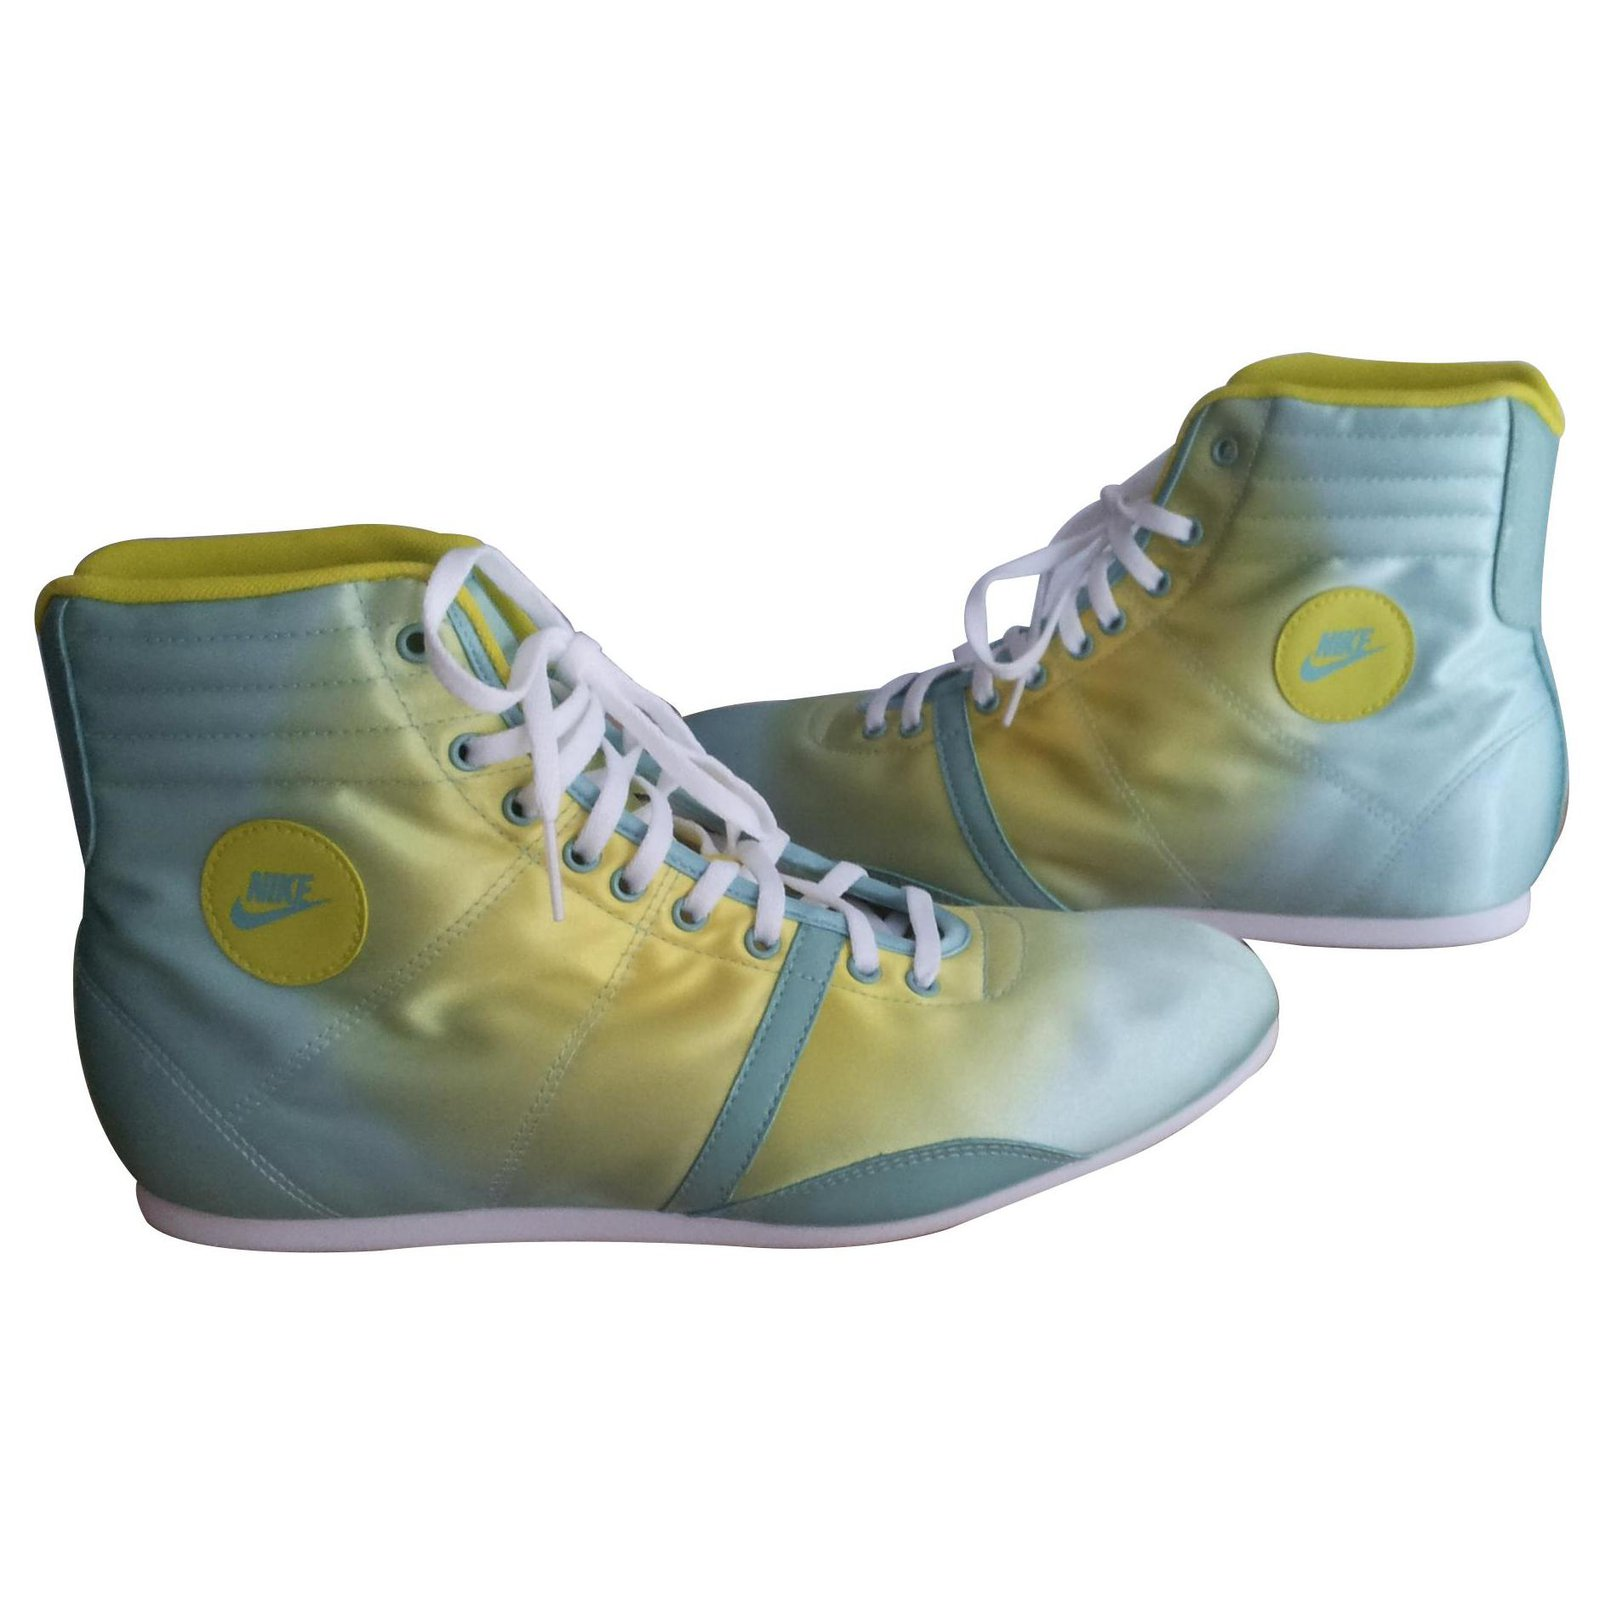 Nike Limited edition Sneakers Other